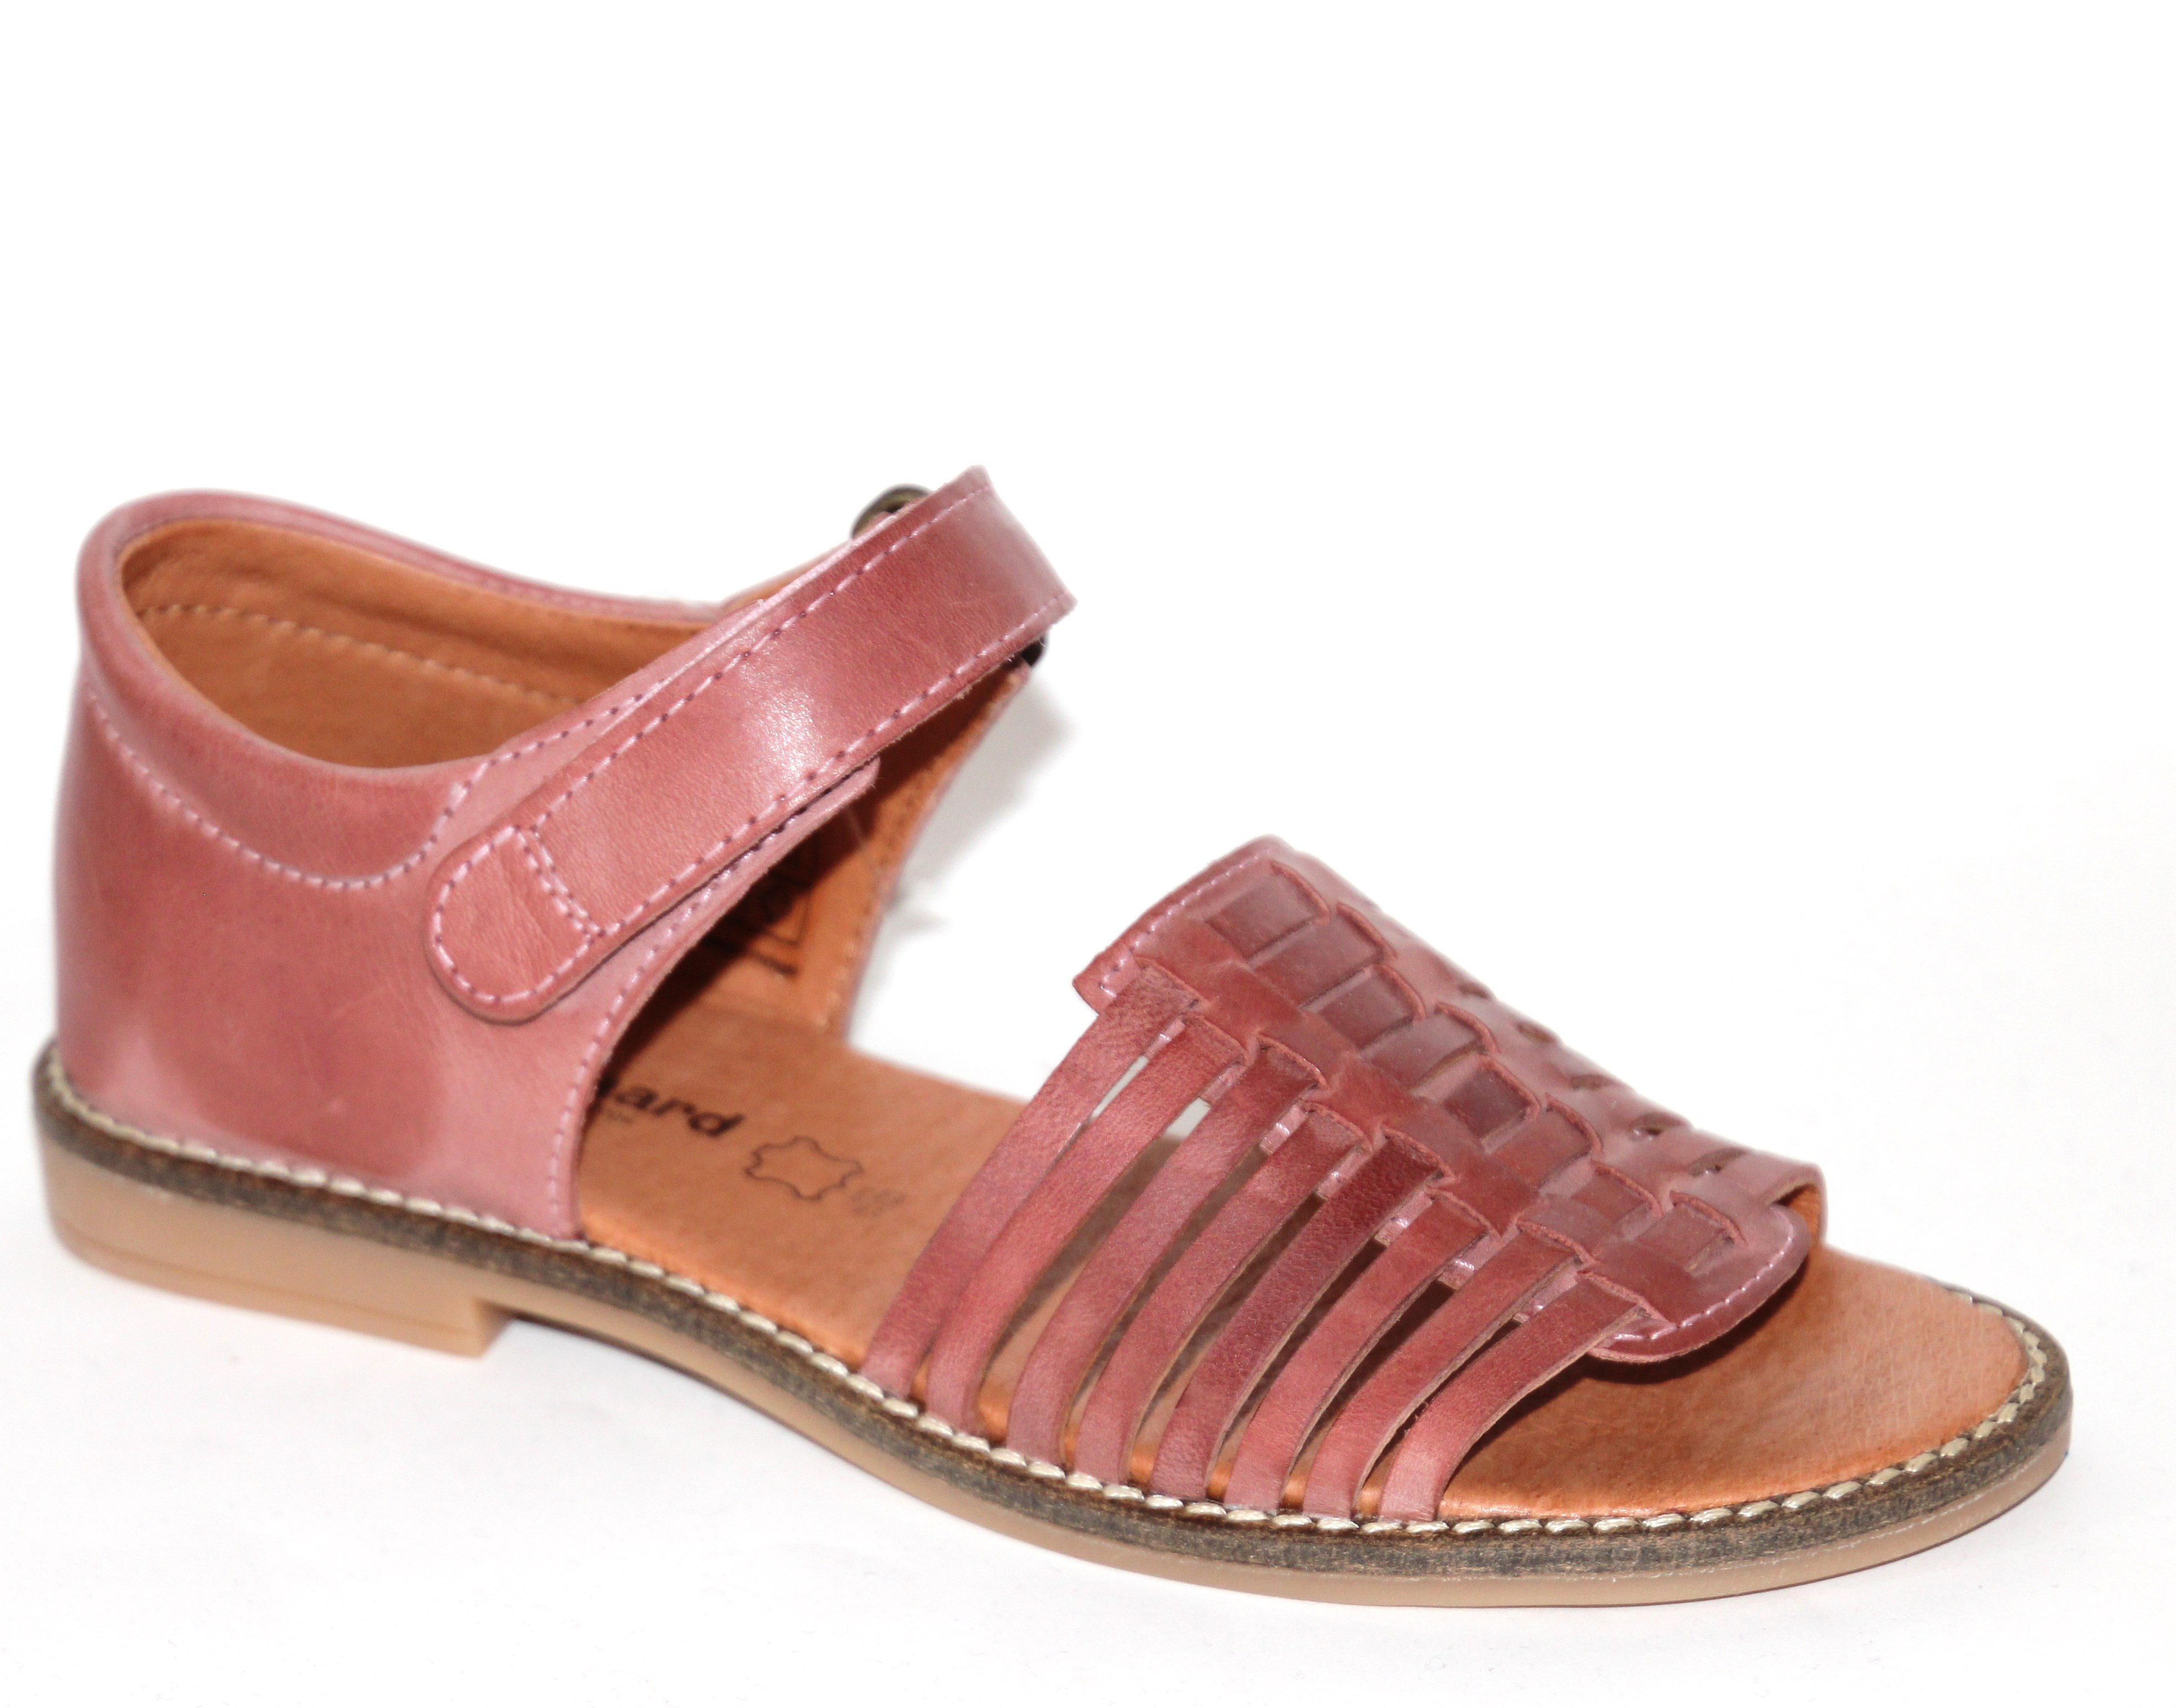 Bundgaard Sandal Lina Old Rose Ws